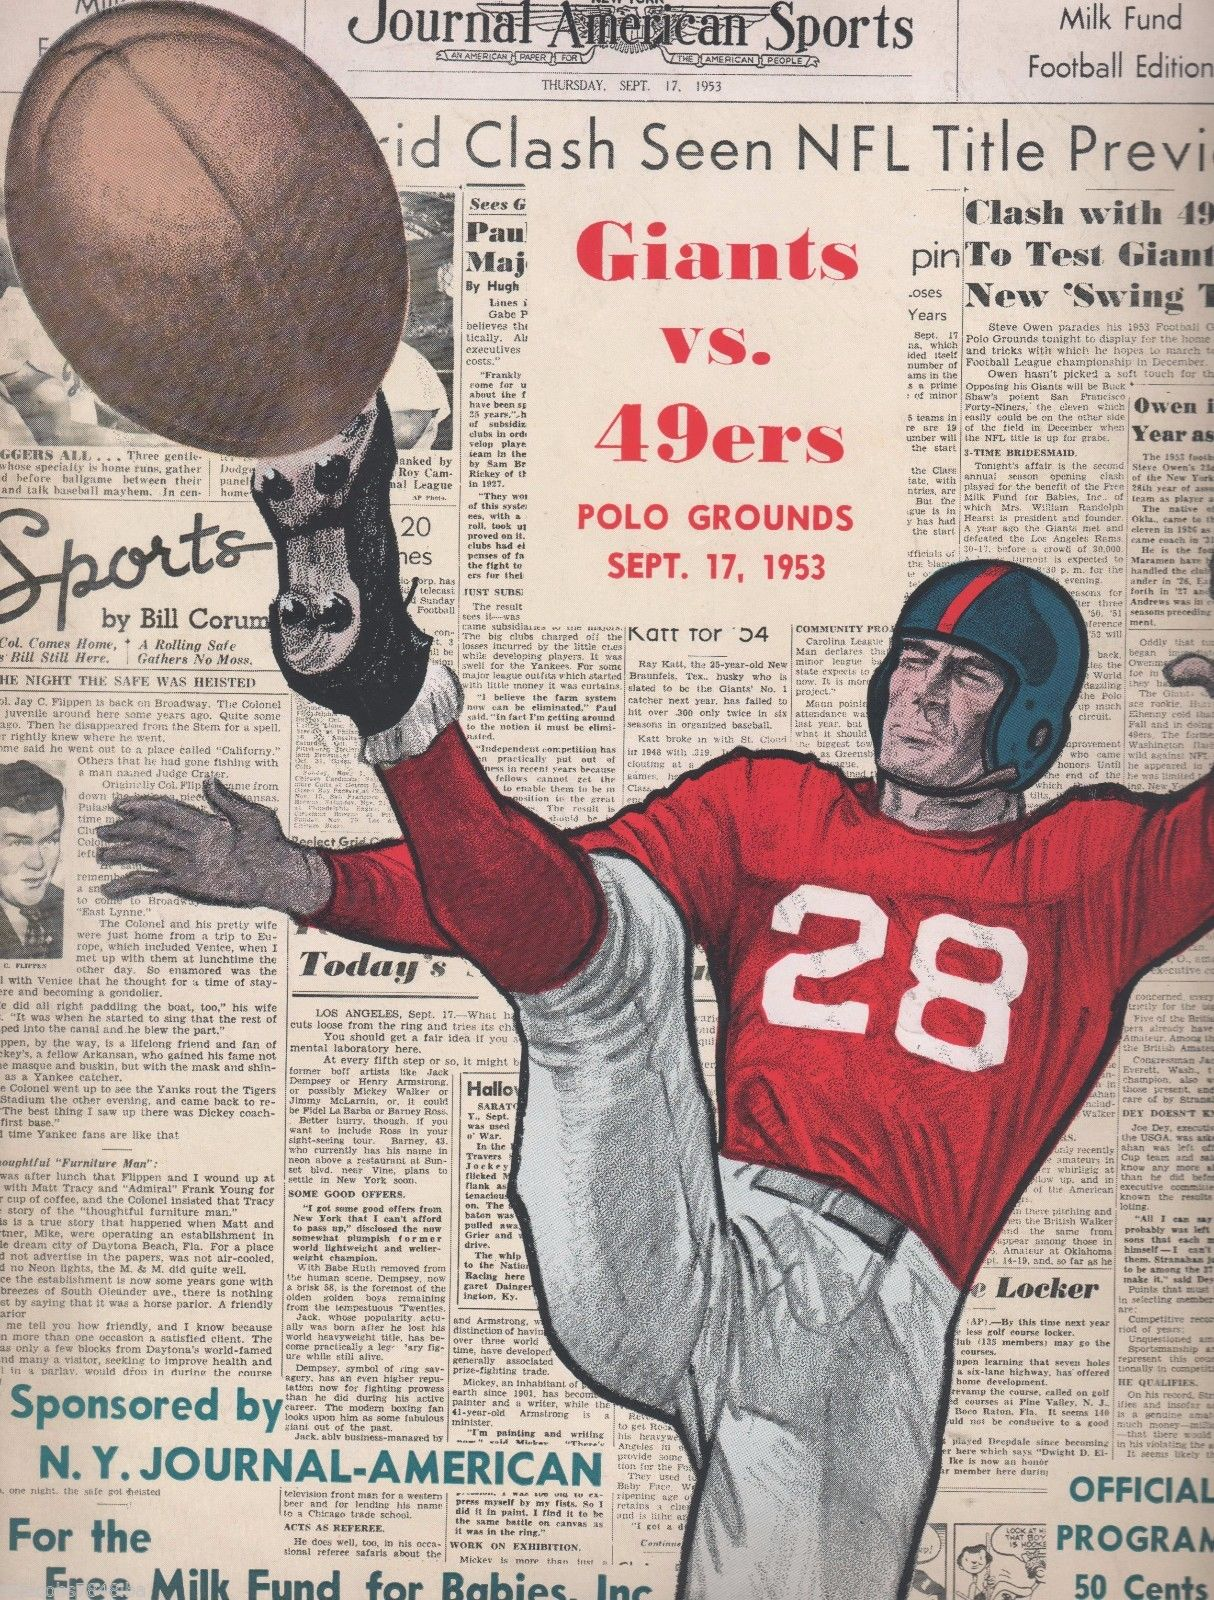 New York Giants - San Francisco 49ers Game Program (September 17, 1953)